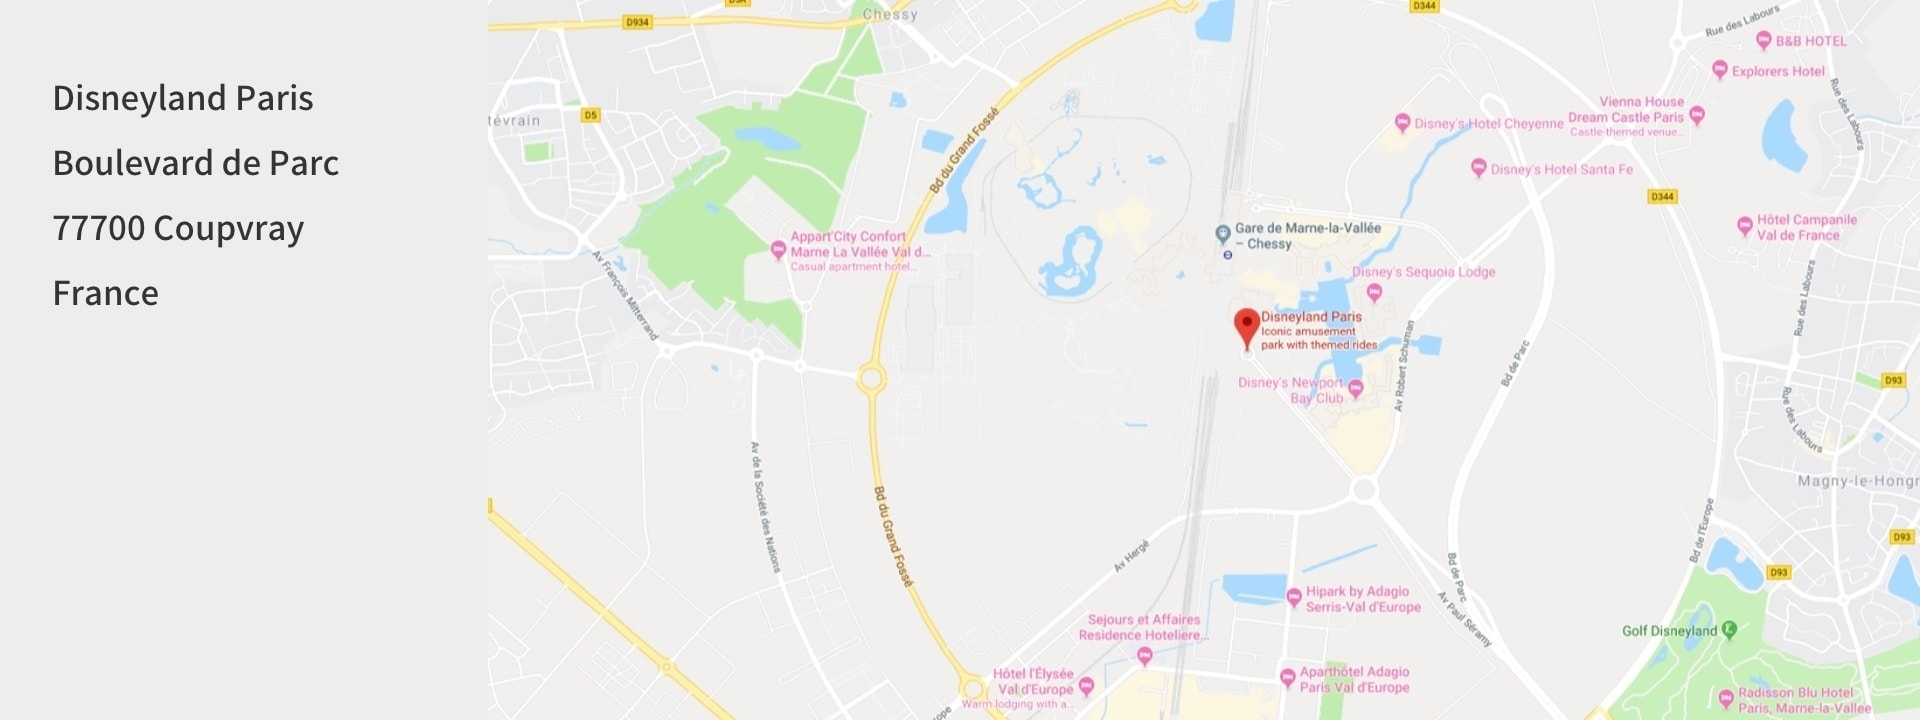 Google Maps image of Disneyland Paris